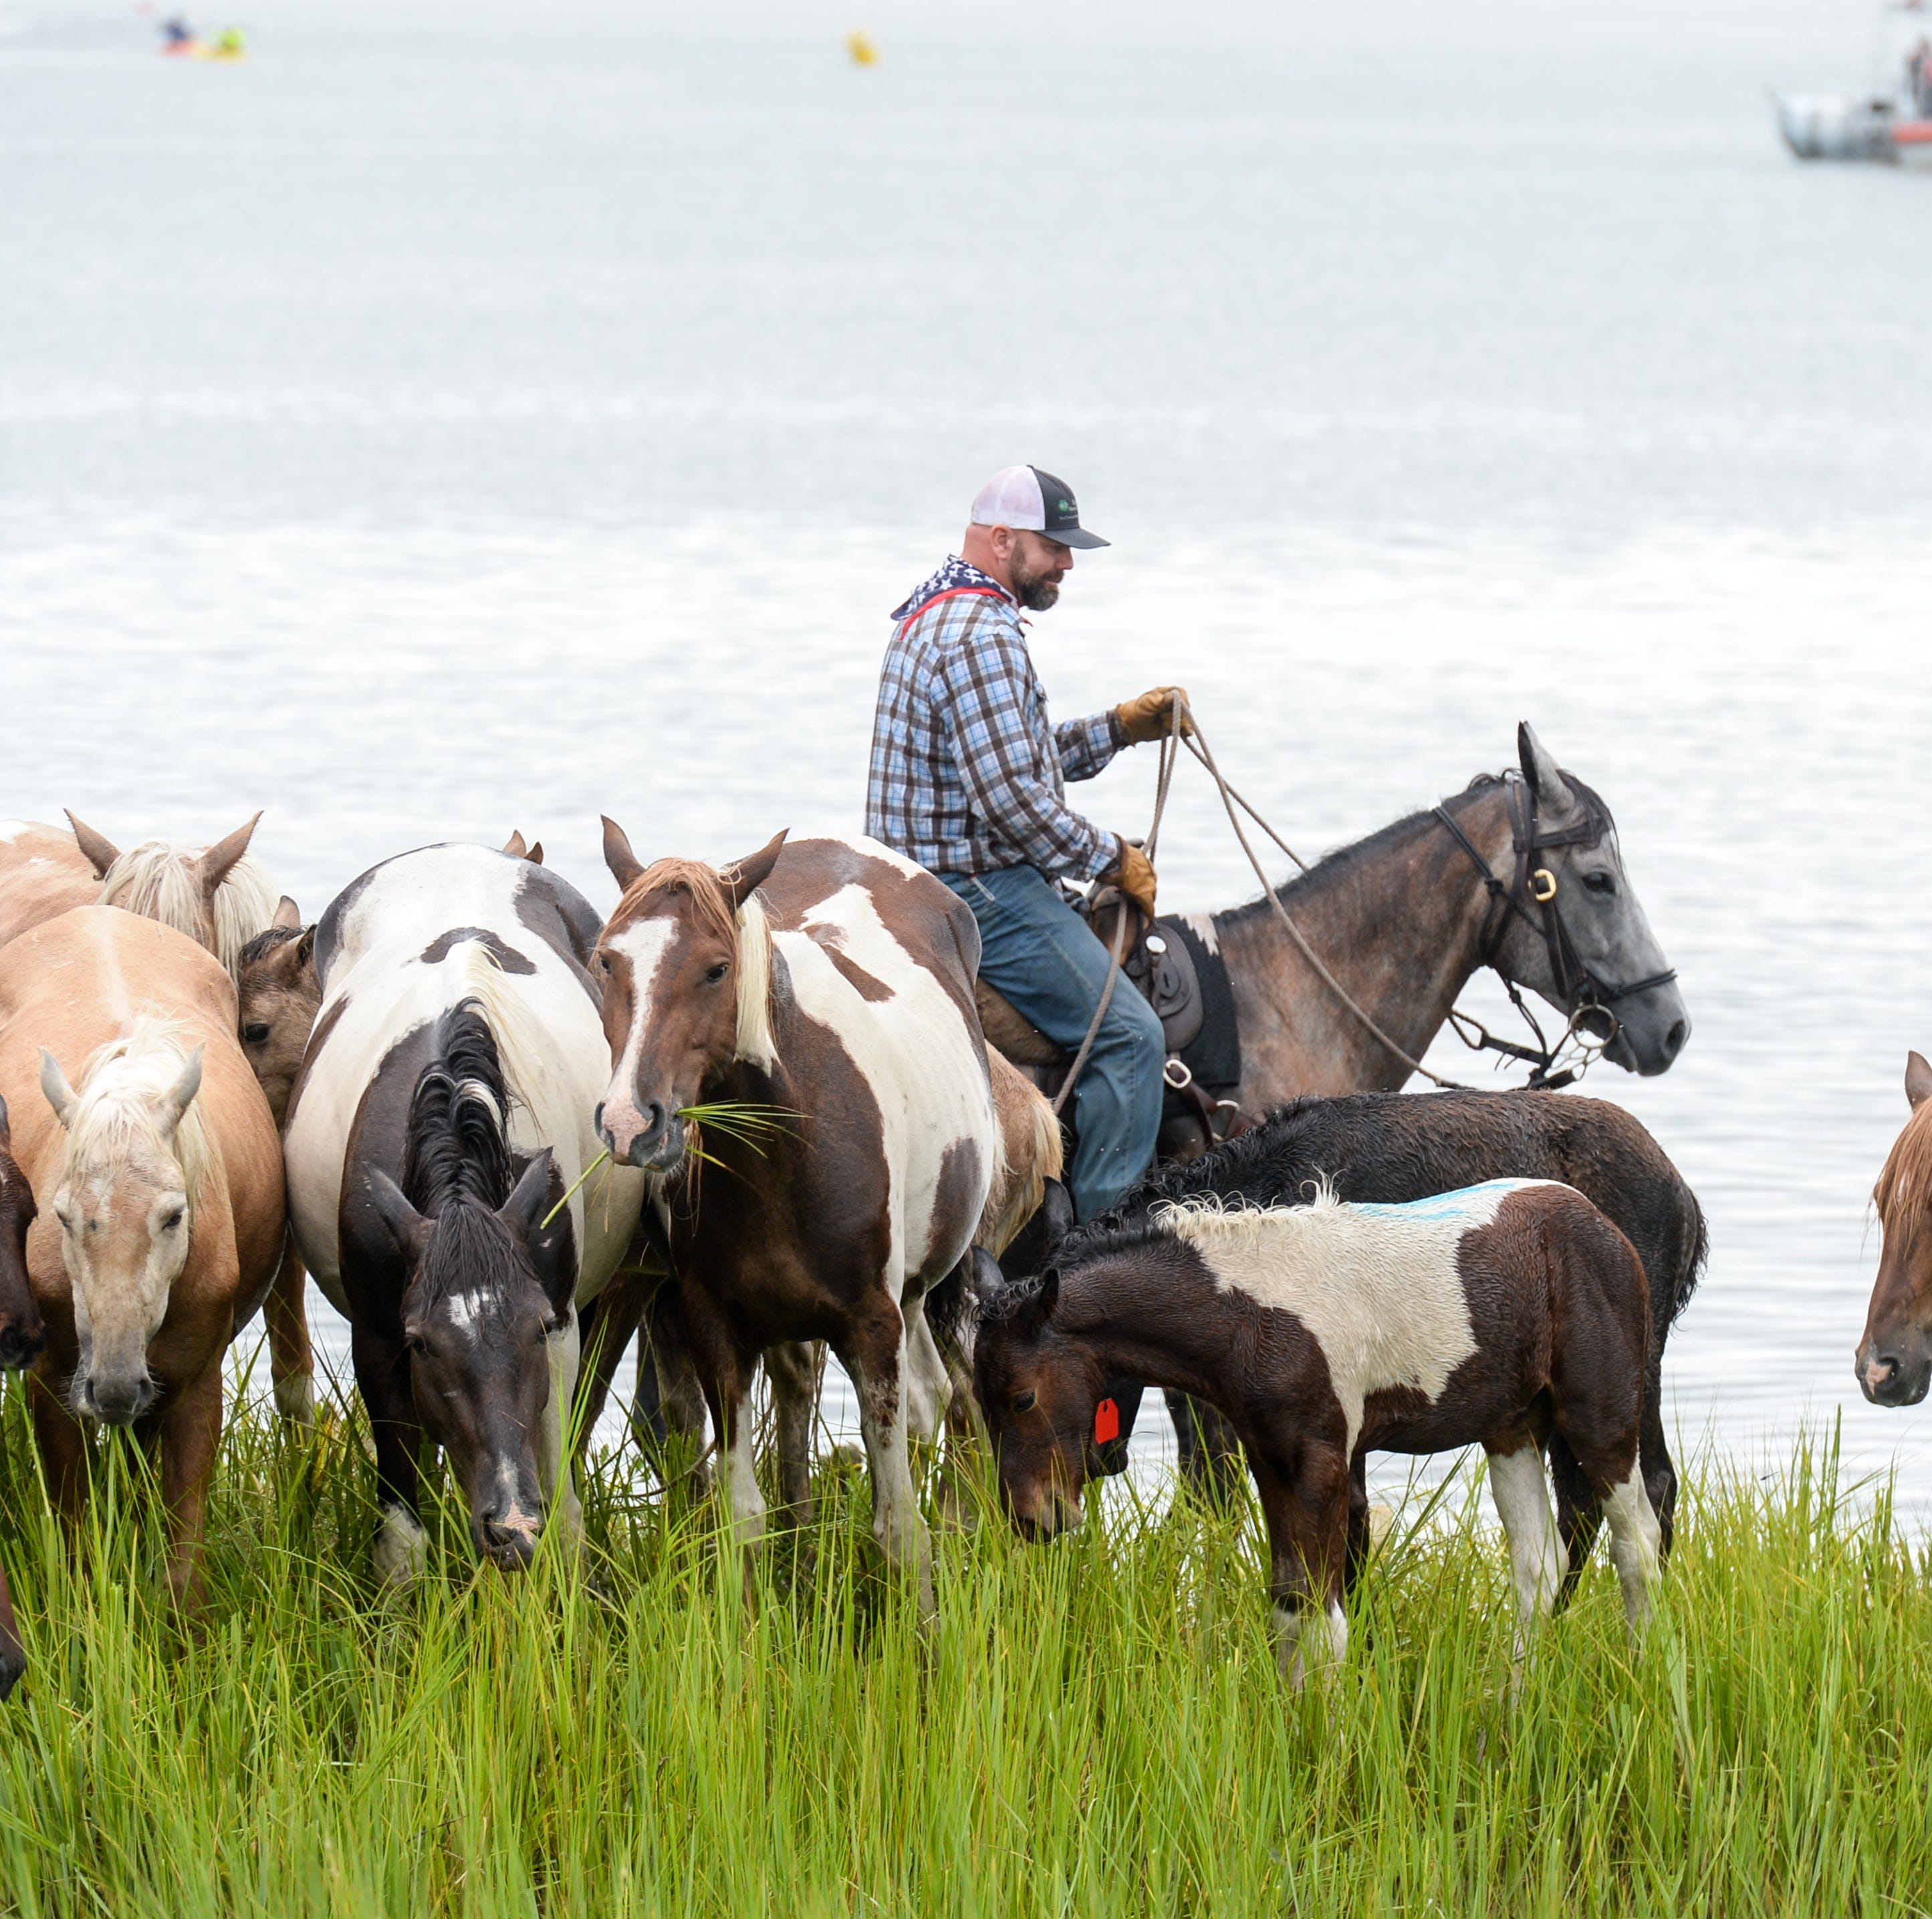 Chincoteague Pony Swim week ends in tragedy. Sympathy voiced for death